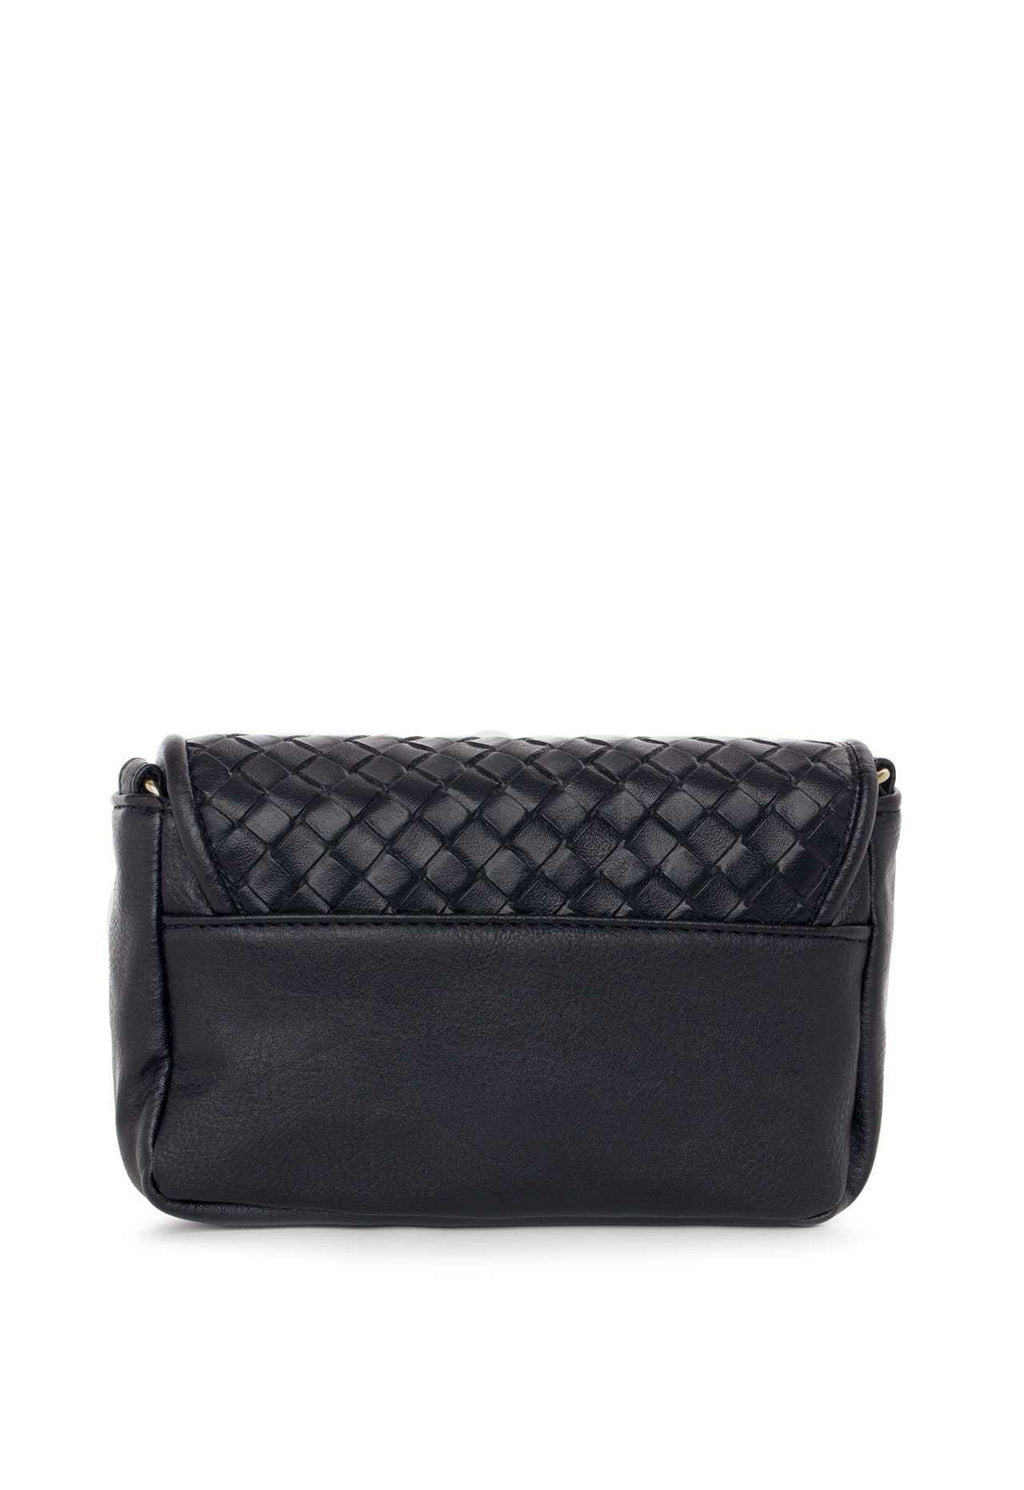 Accessories - Clemence Purse